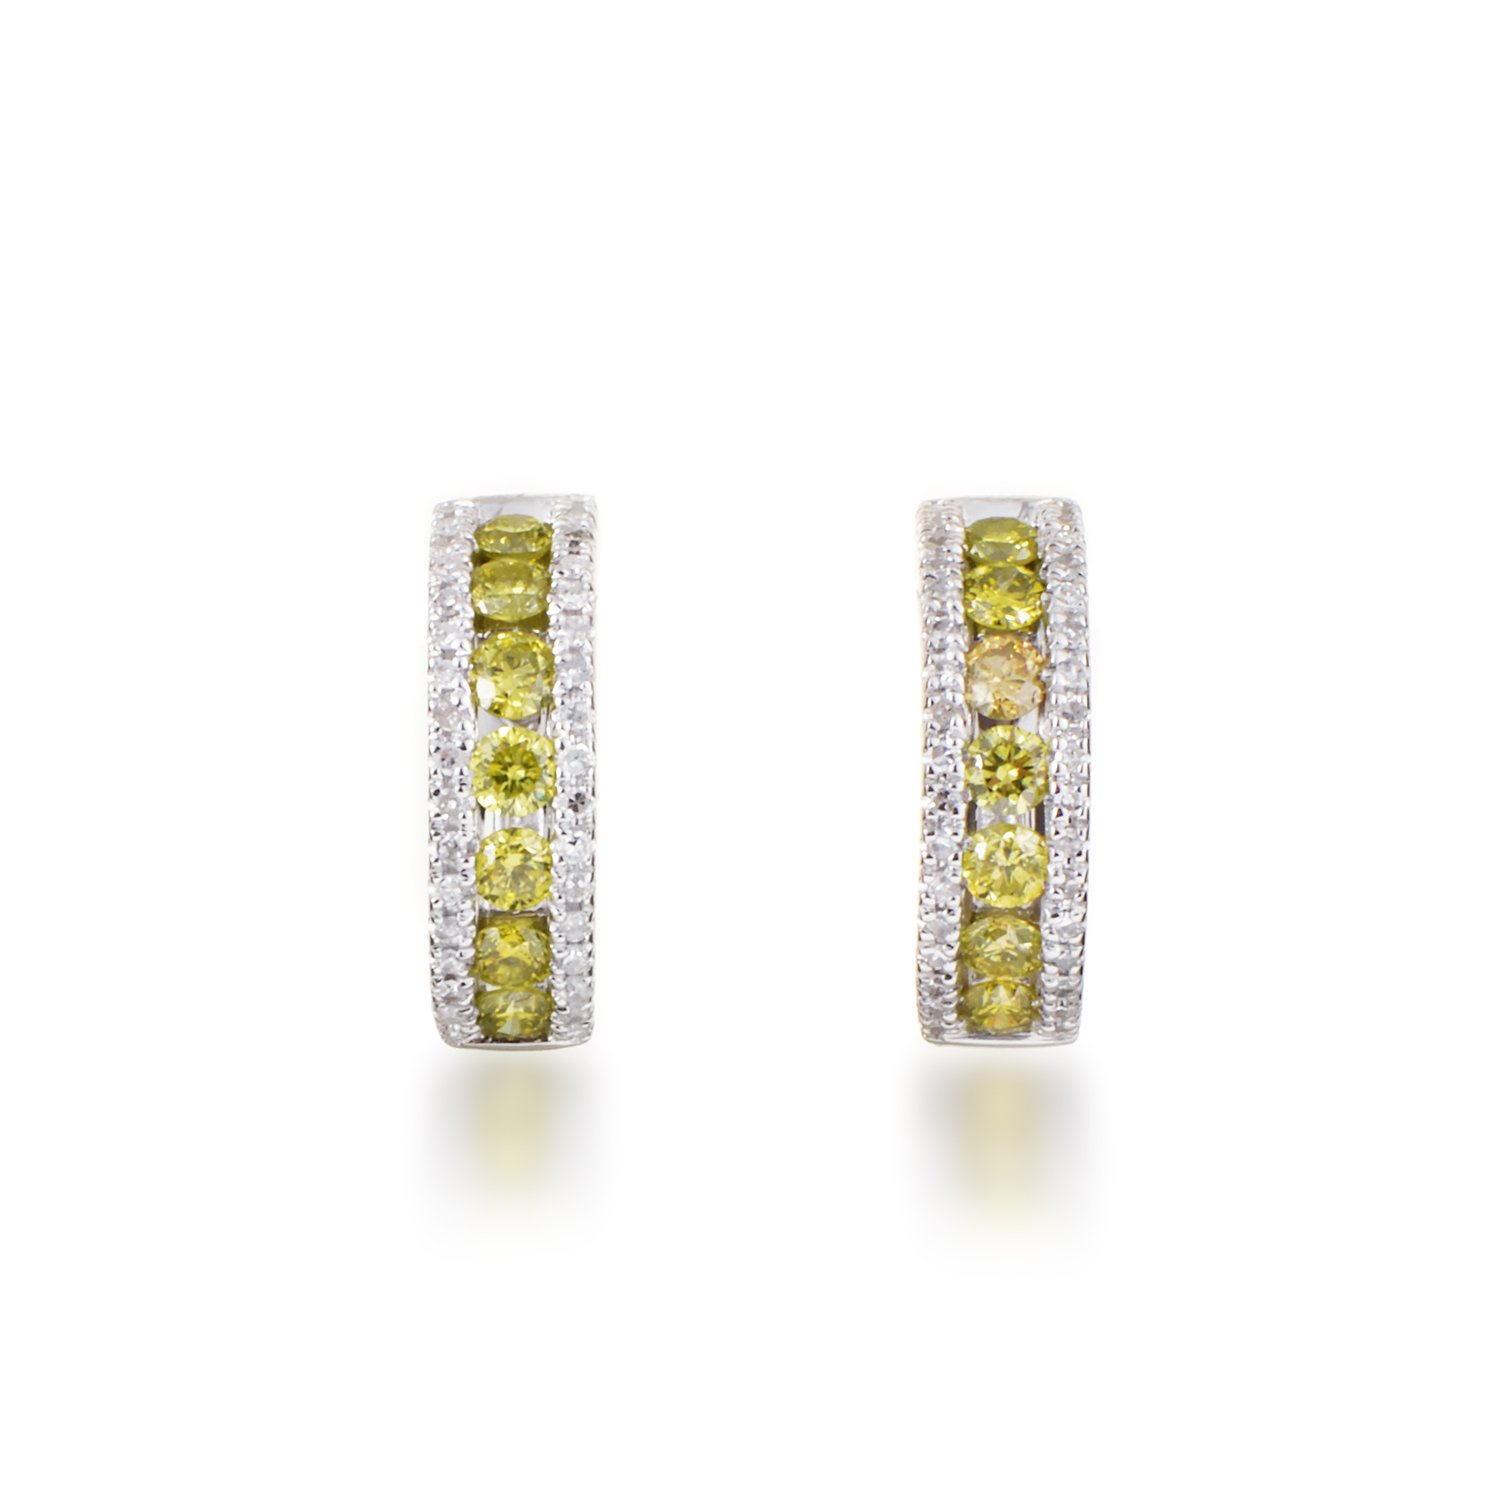 White and Yellow Diamond Hoop Earrings in 14K White Gold; 0.4 Carats of Dazzling Yellow and White Diamonds in 0.5'' Hoops